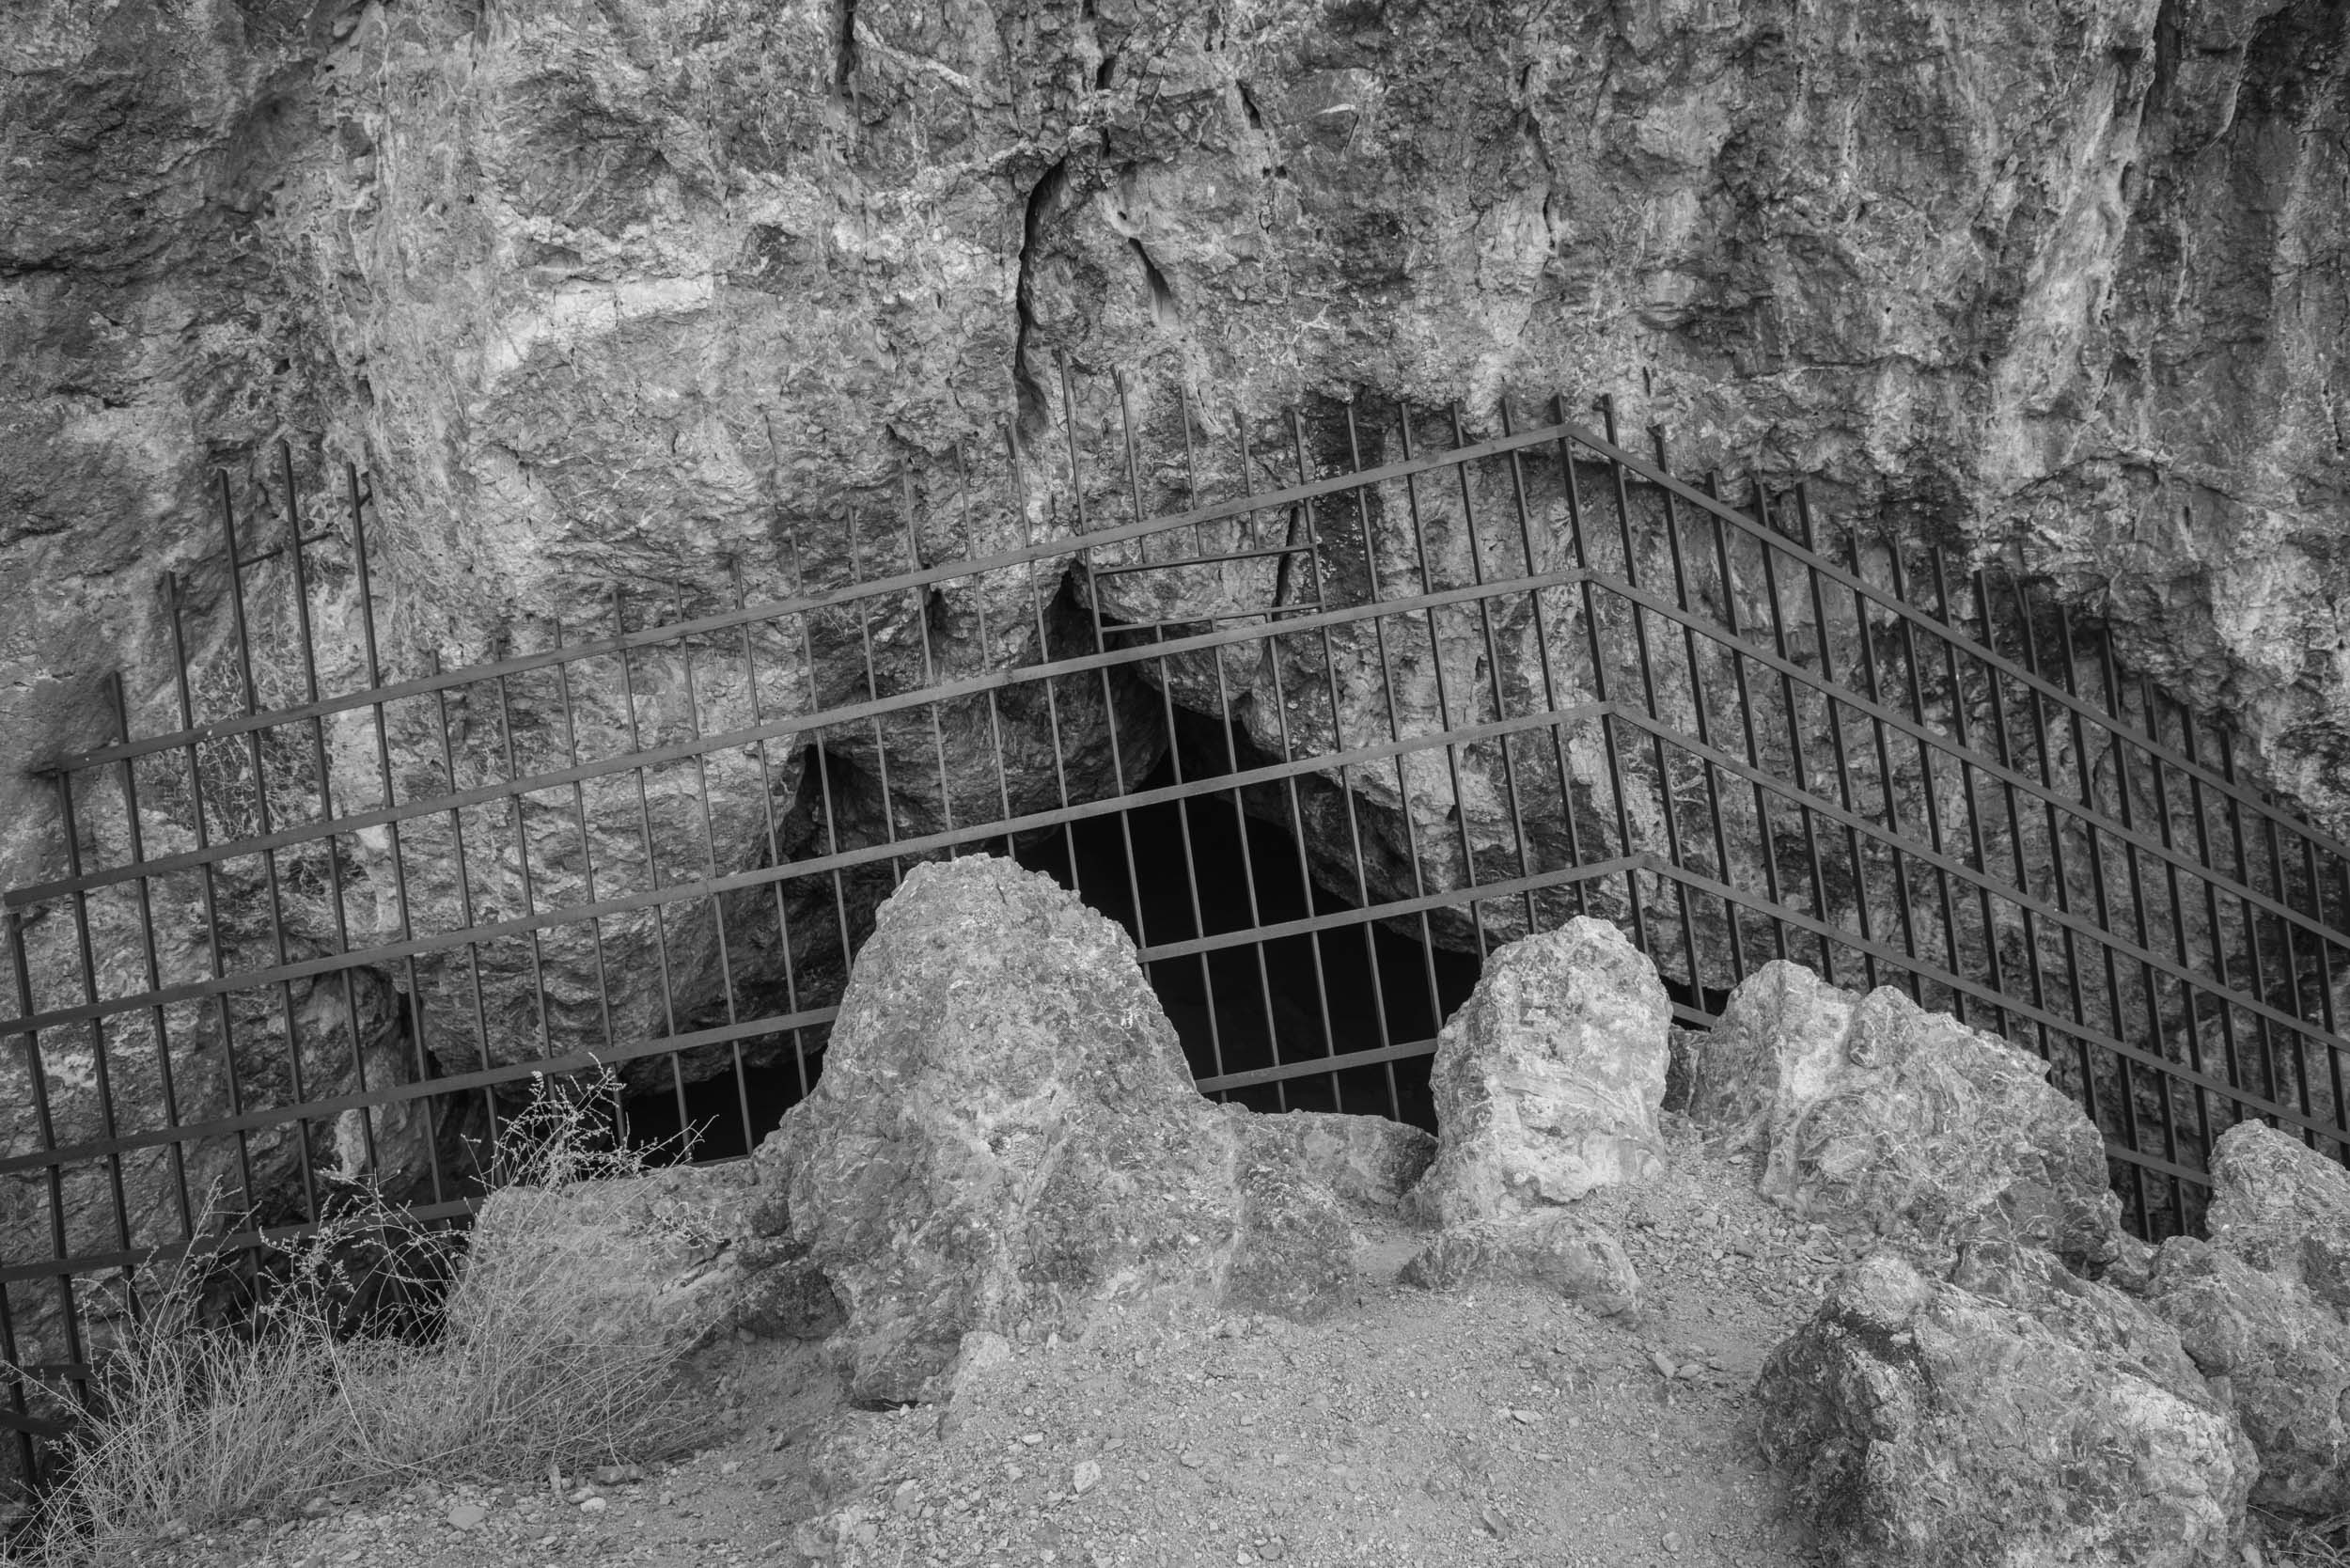 Juke Box Cave is gated off in the Silver Island Range, Wendover, Utah. Post ice-age cave with 12,000 years of human inhabitants.